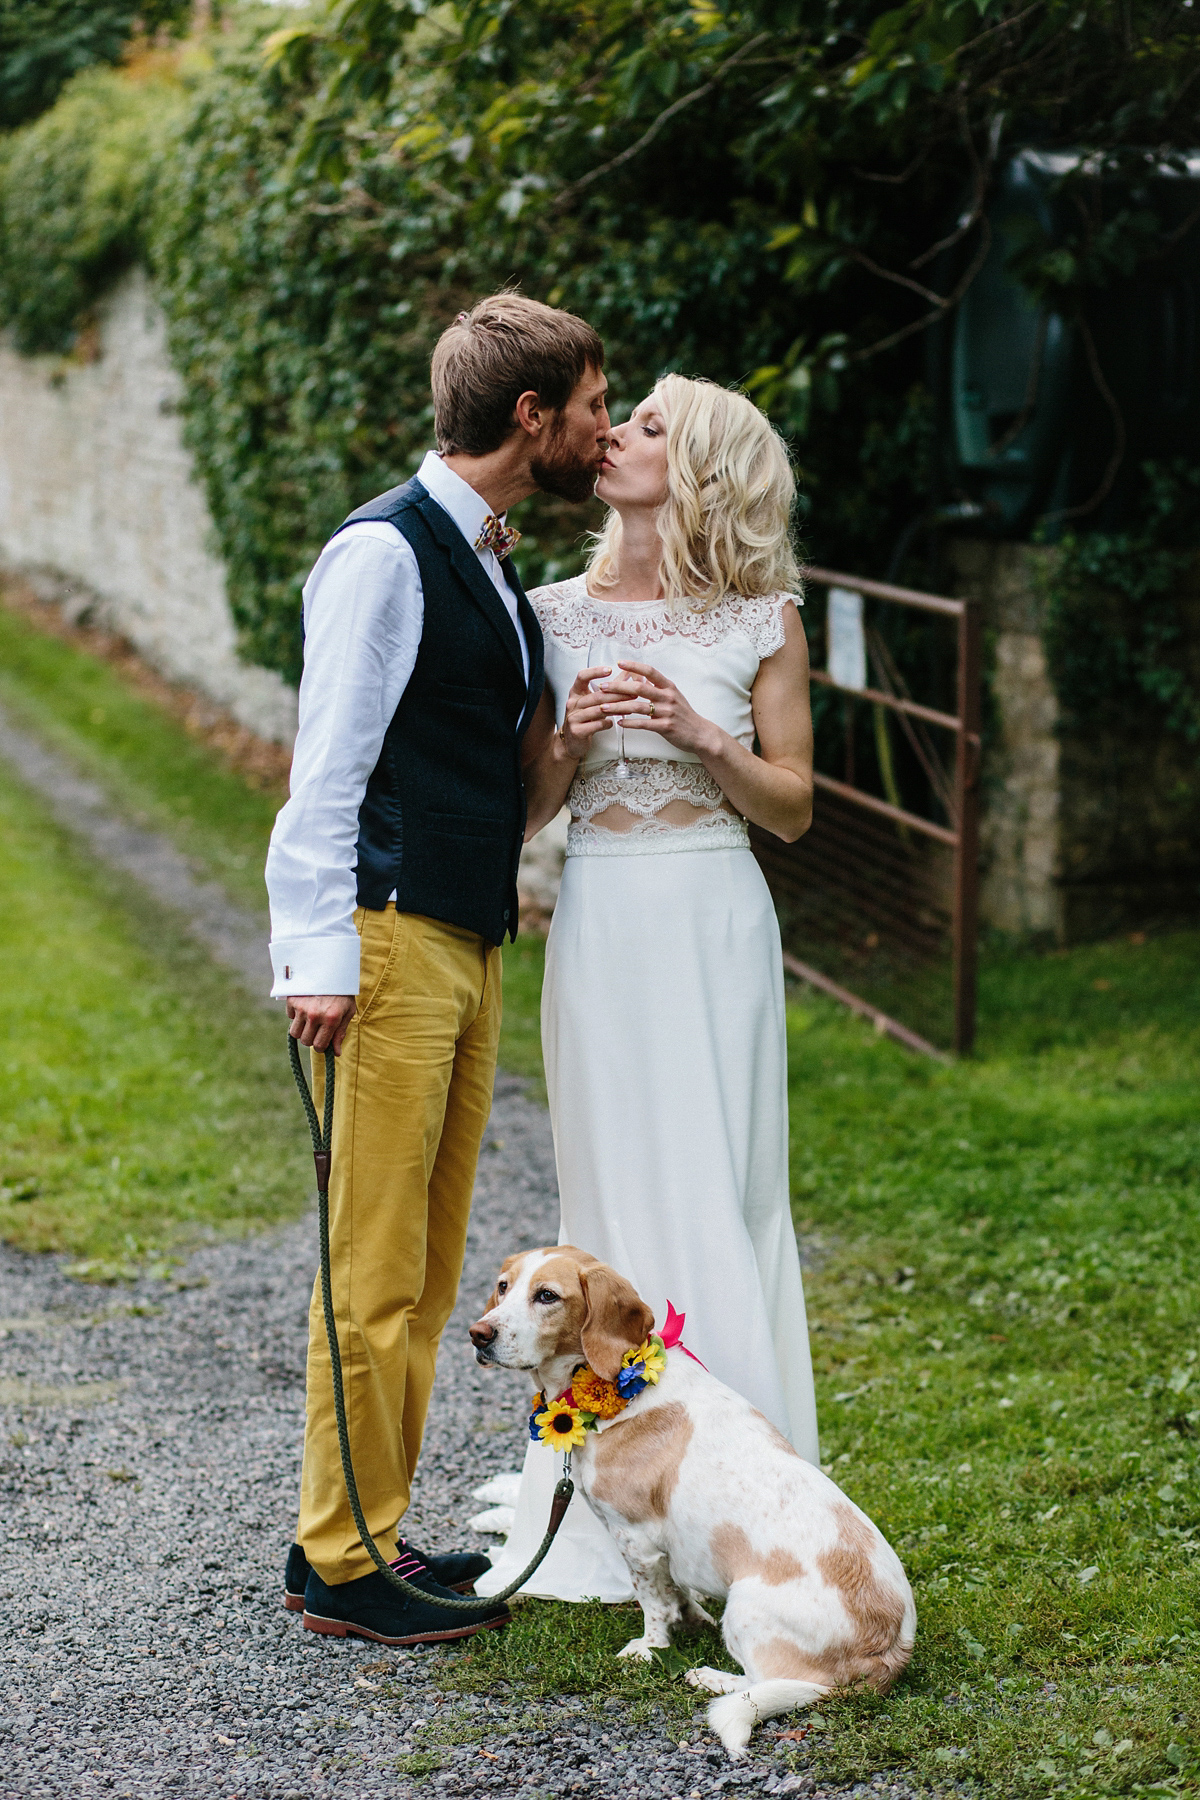 Rime Arodaky Bridal Separates Colourful Wedding For A And Quirky